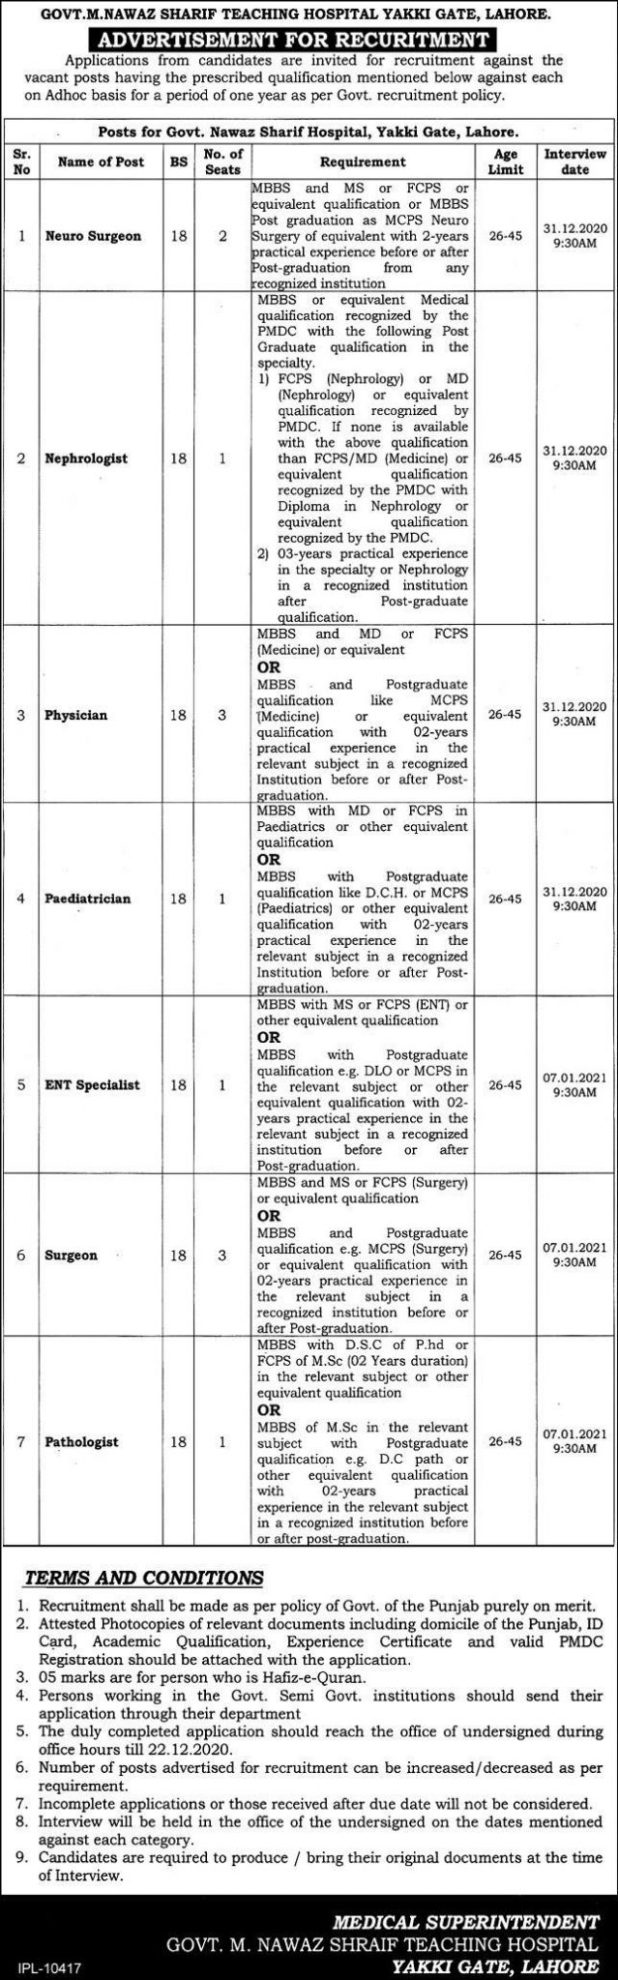 Govt M.Nawaz Sharif Hospital Yakki Gate Lahore Jobs 2021 Application Form Eligibility Criteria